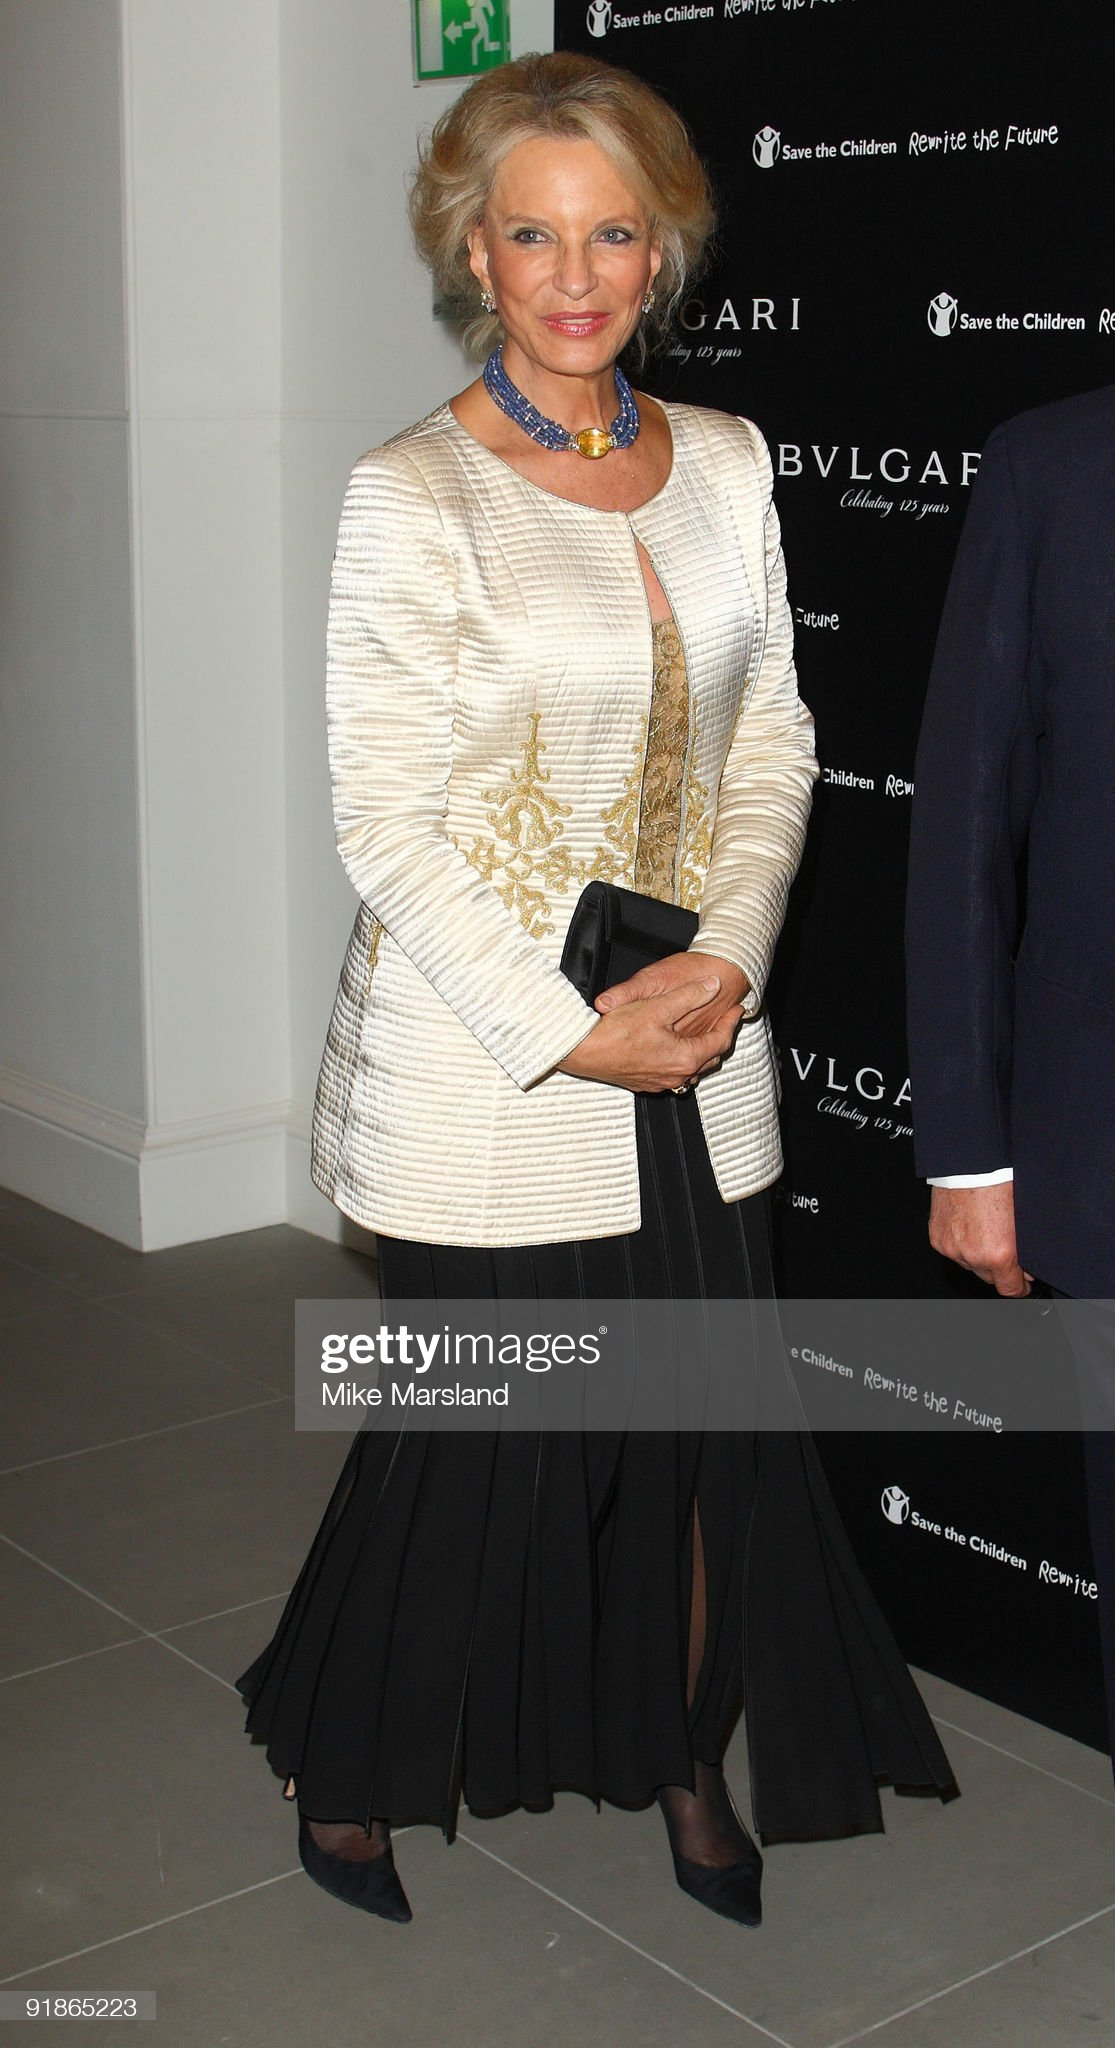 Vogue/Bvlgari - Charity Reception - Inside Arrivals : News Photo